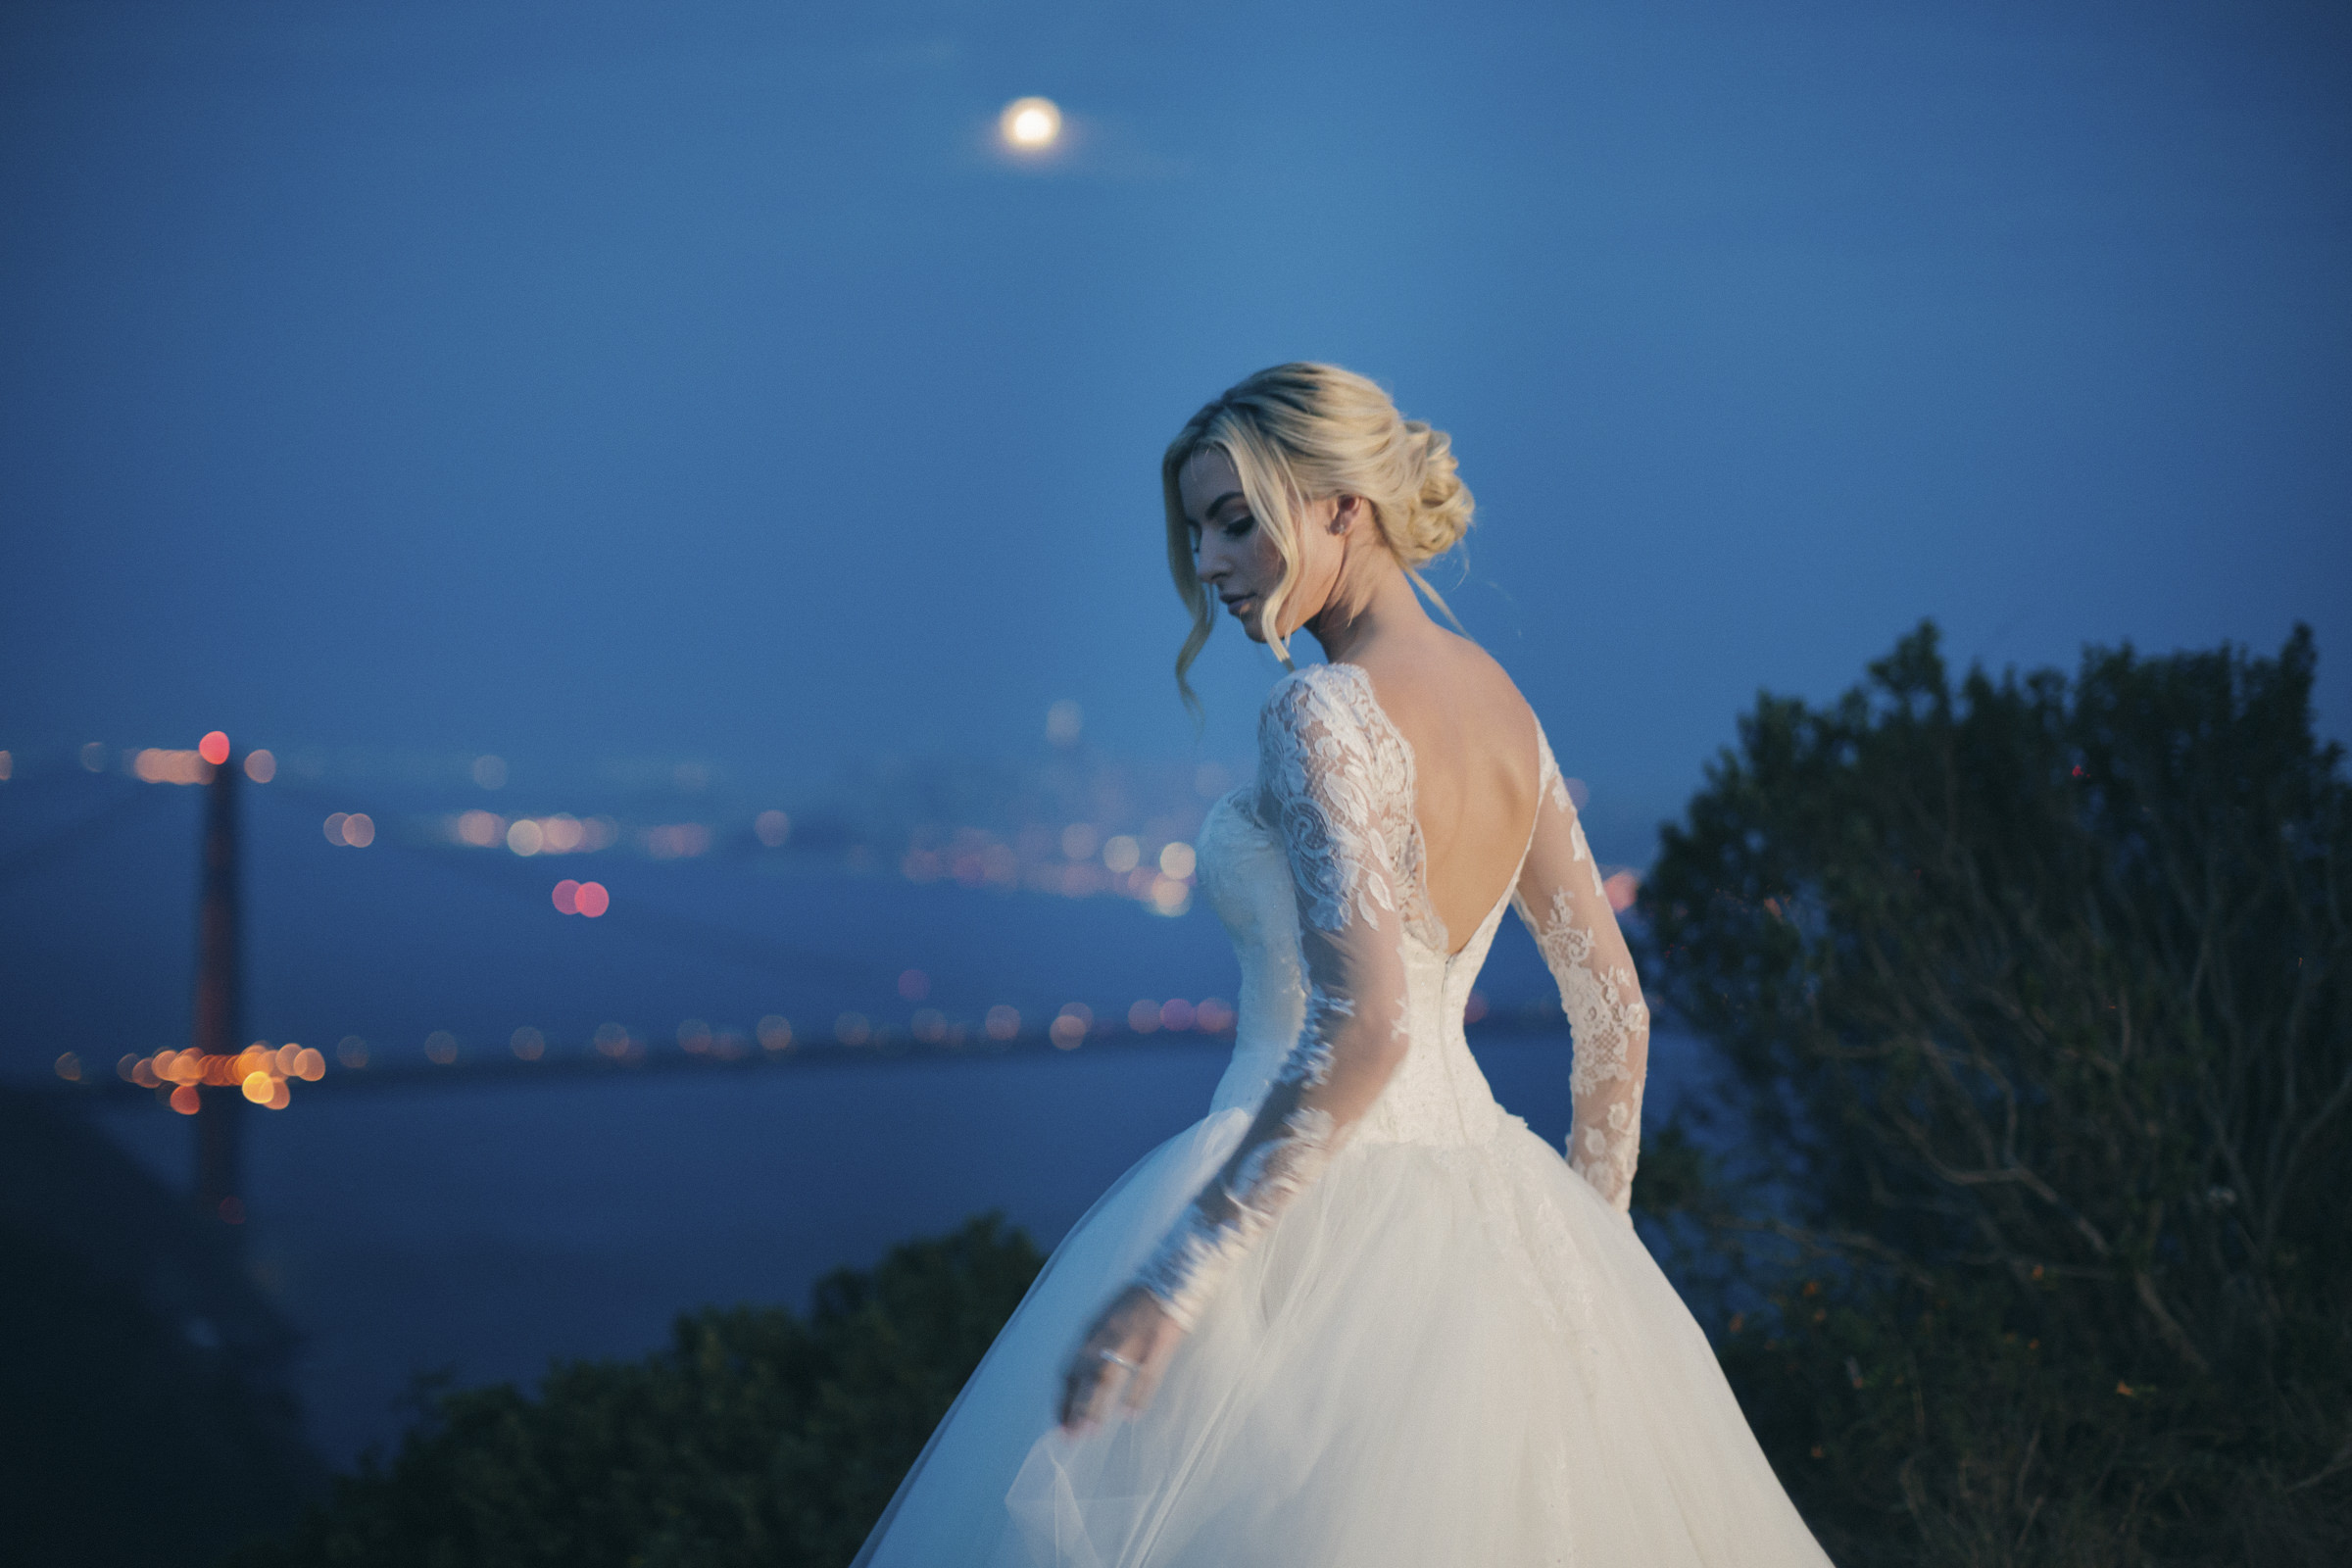 blonde-bride-with-updo-wearing-ballgown-with-lace-sleeves-amyandstuart-photography